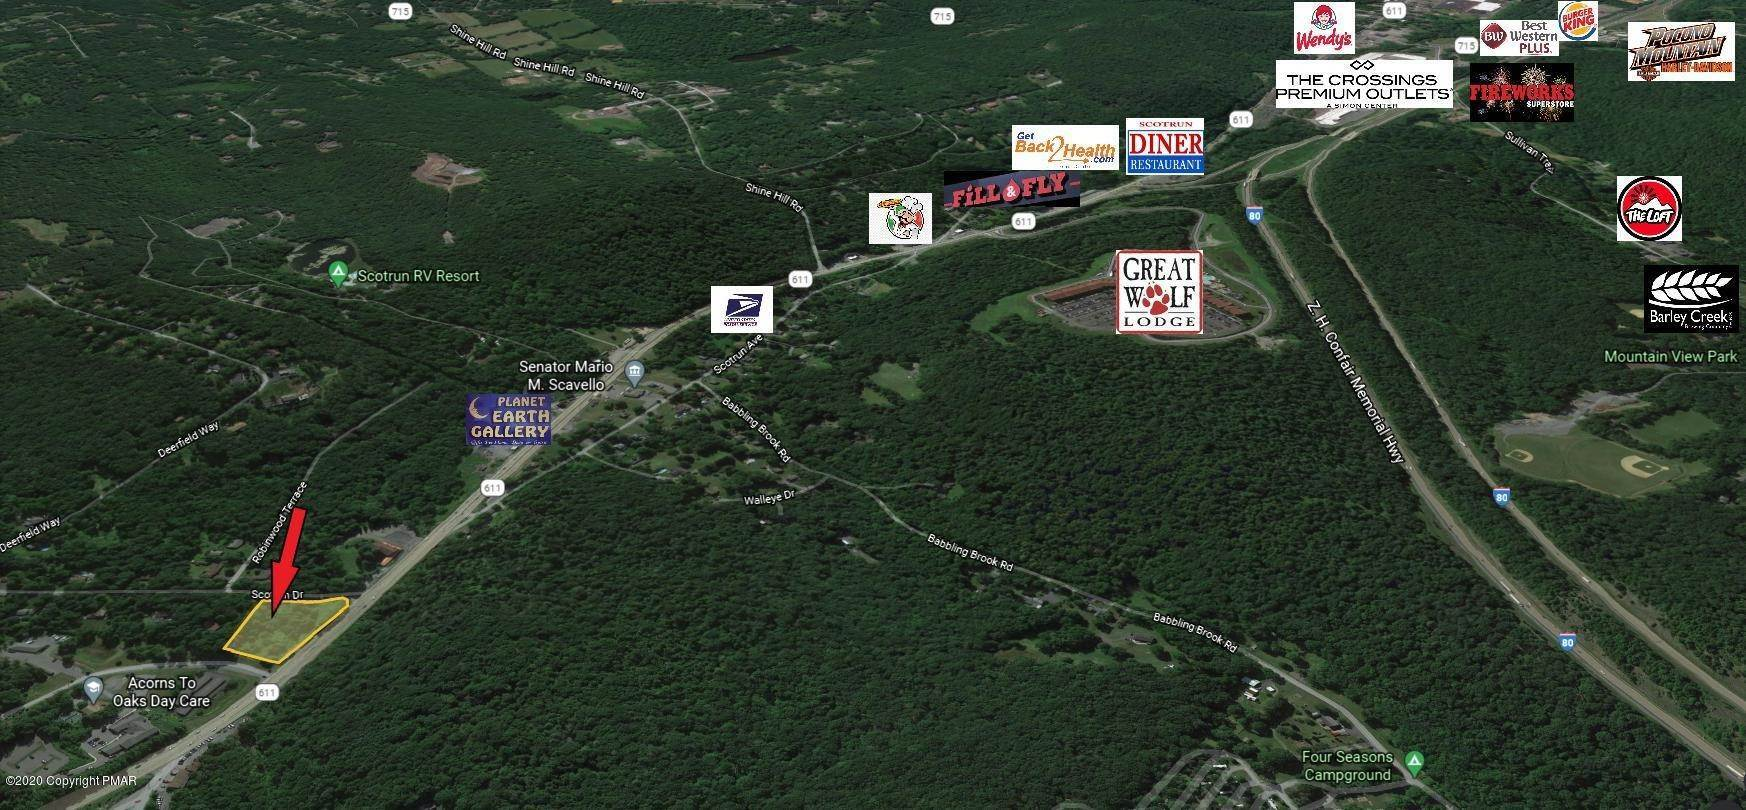 Land for Sale at 2 Scotrun Dr Scotrun, Pennsylvania 18355 United States